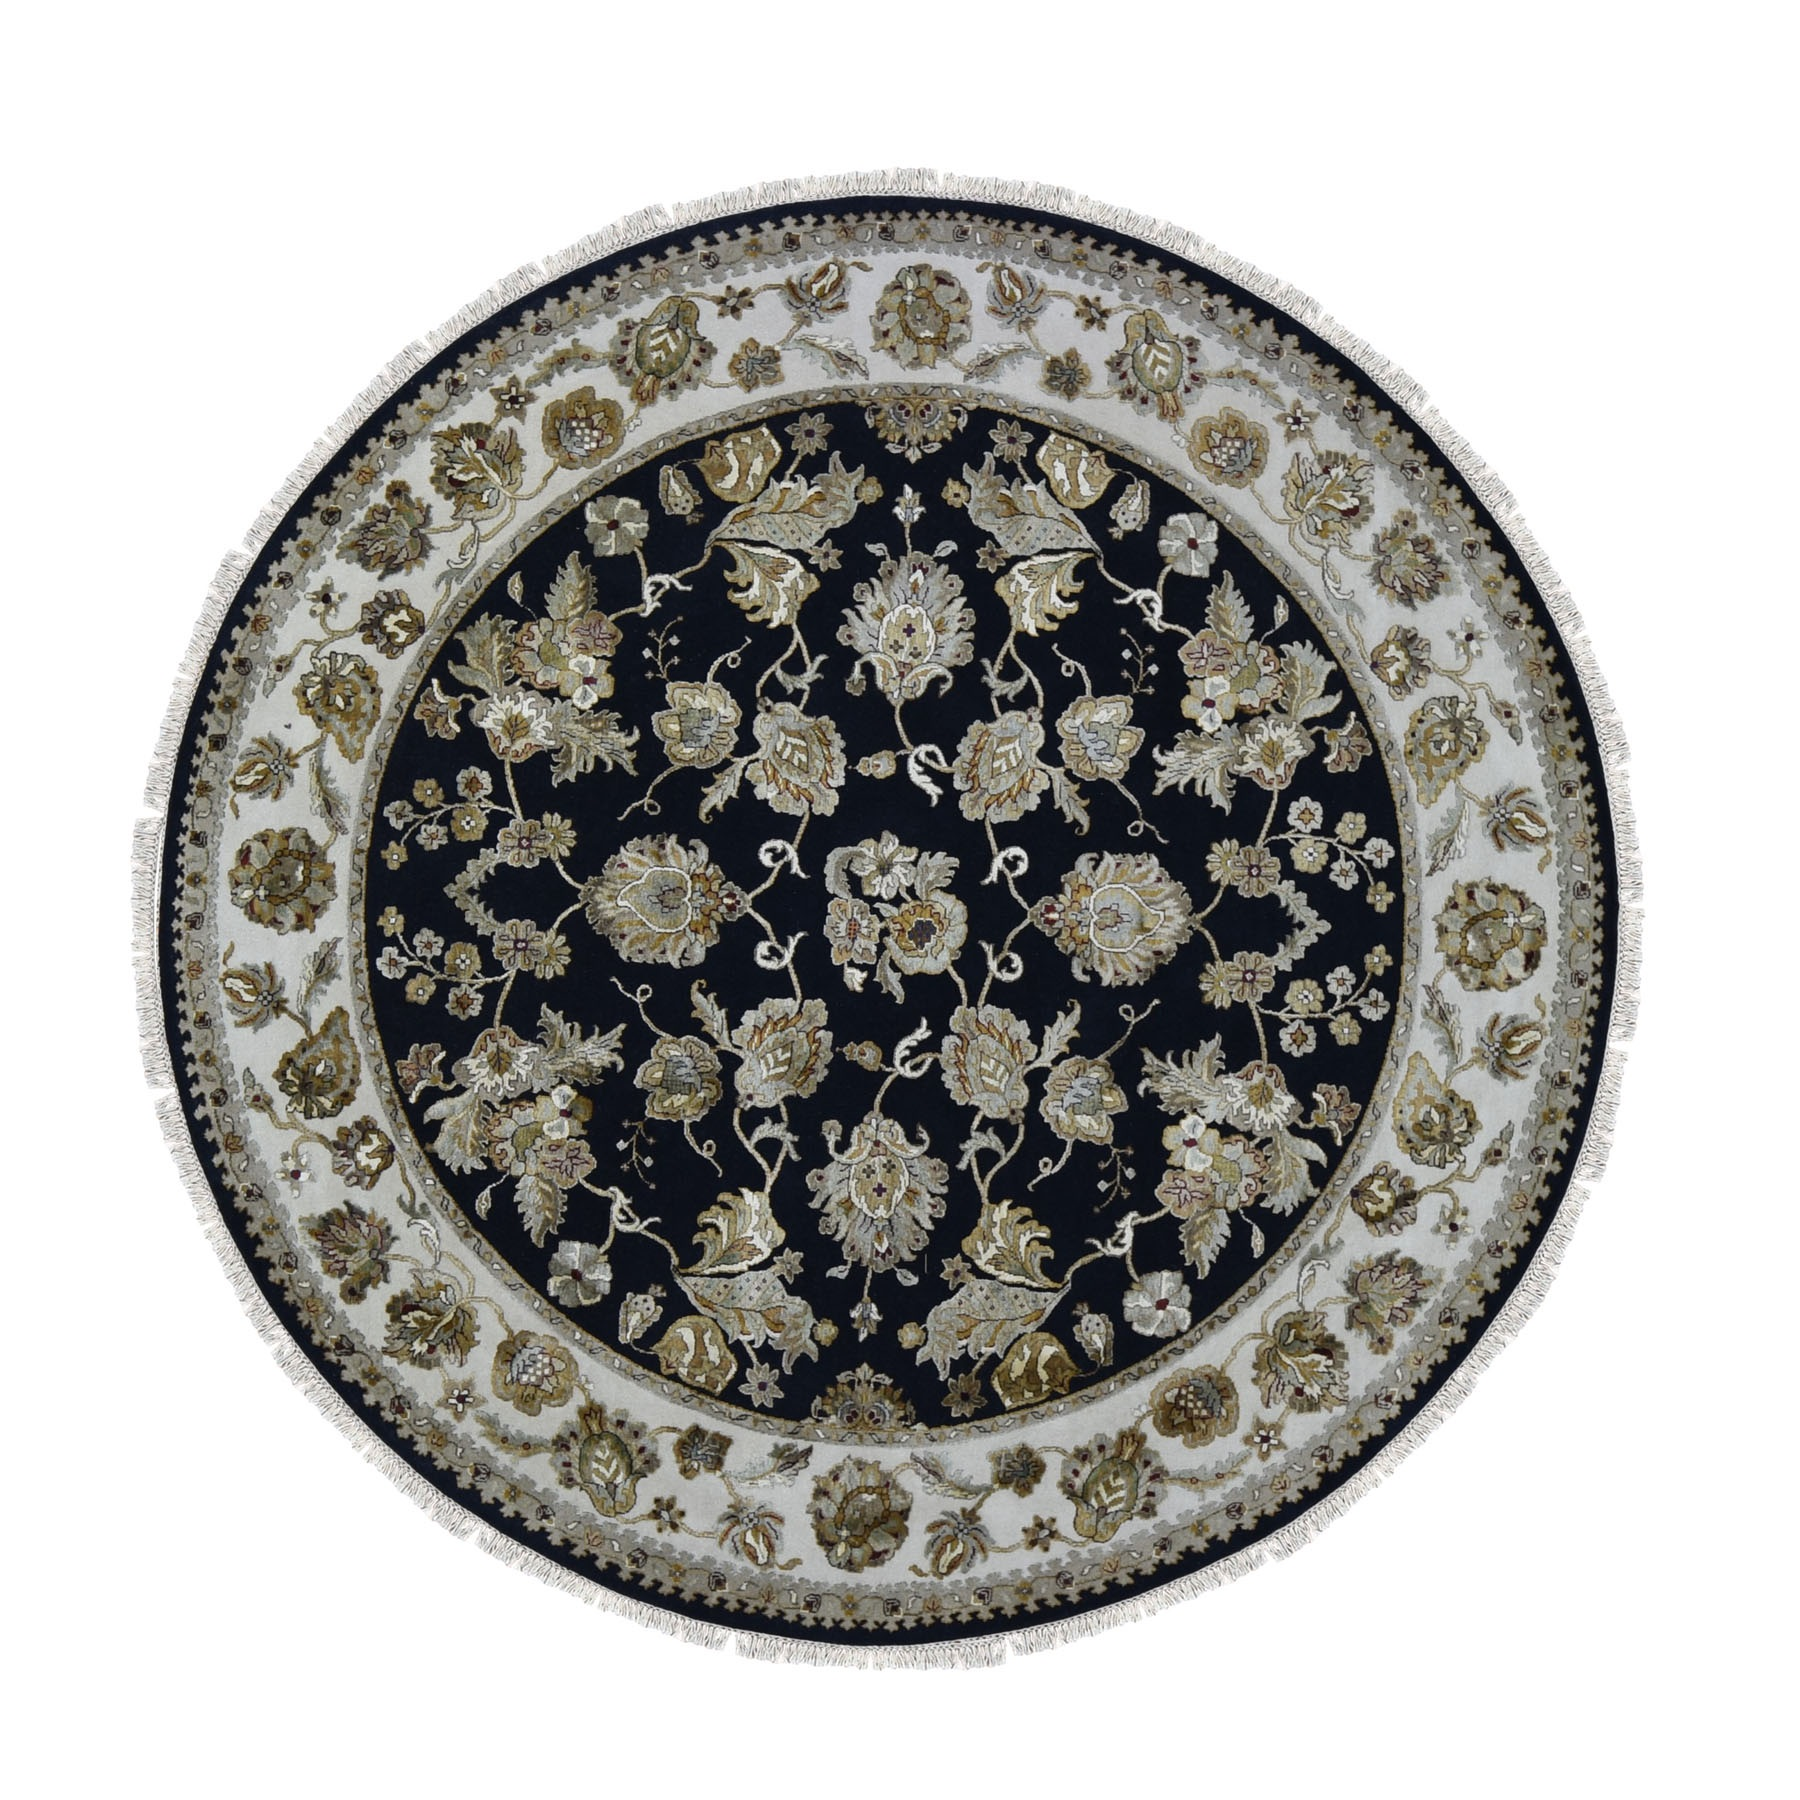 Pahlavi Collection Hand Knotted Black Rug No: 1118034